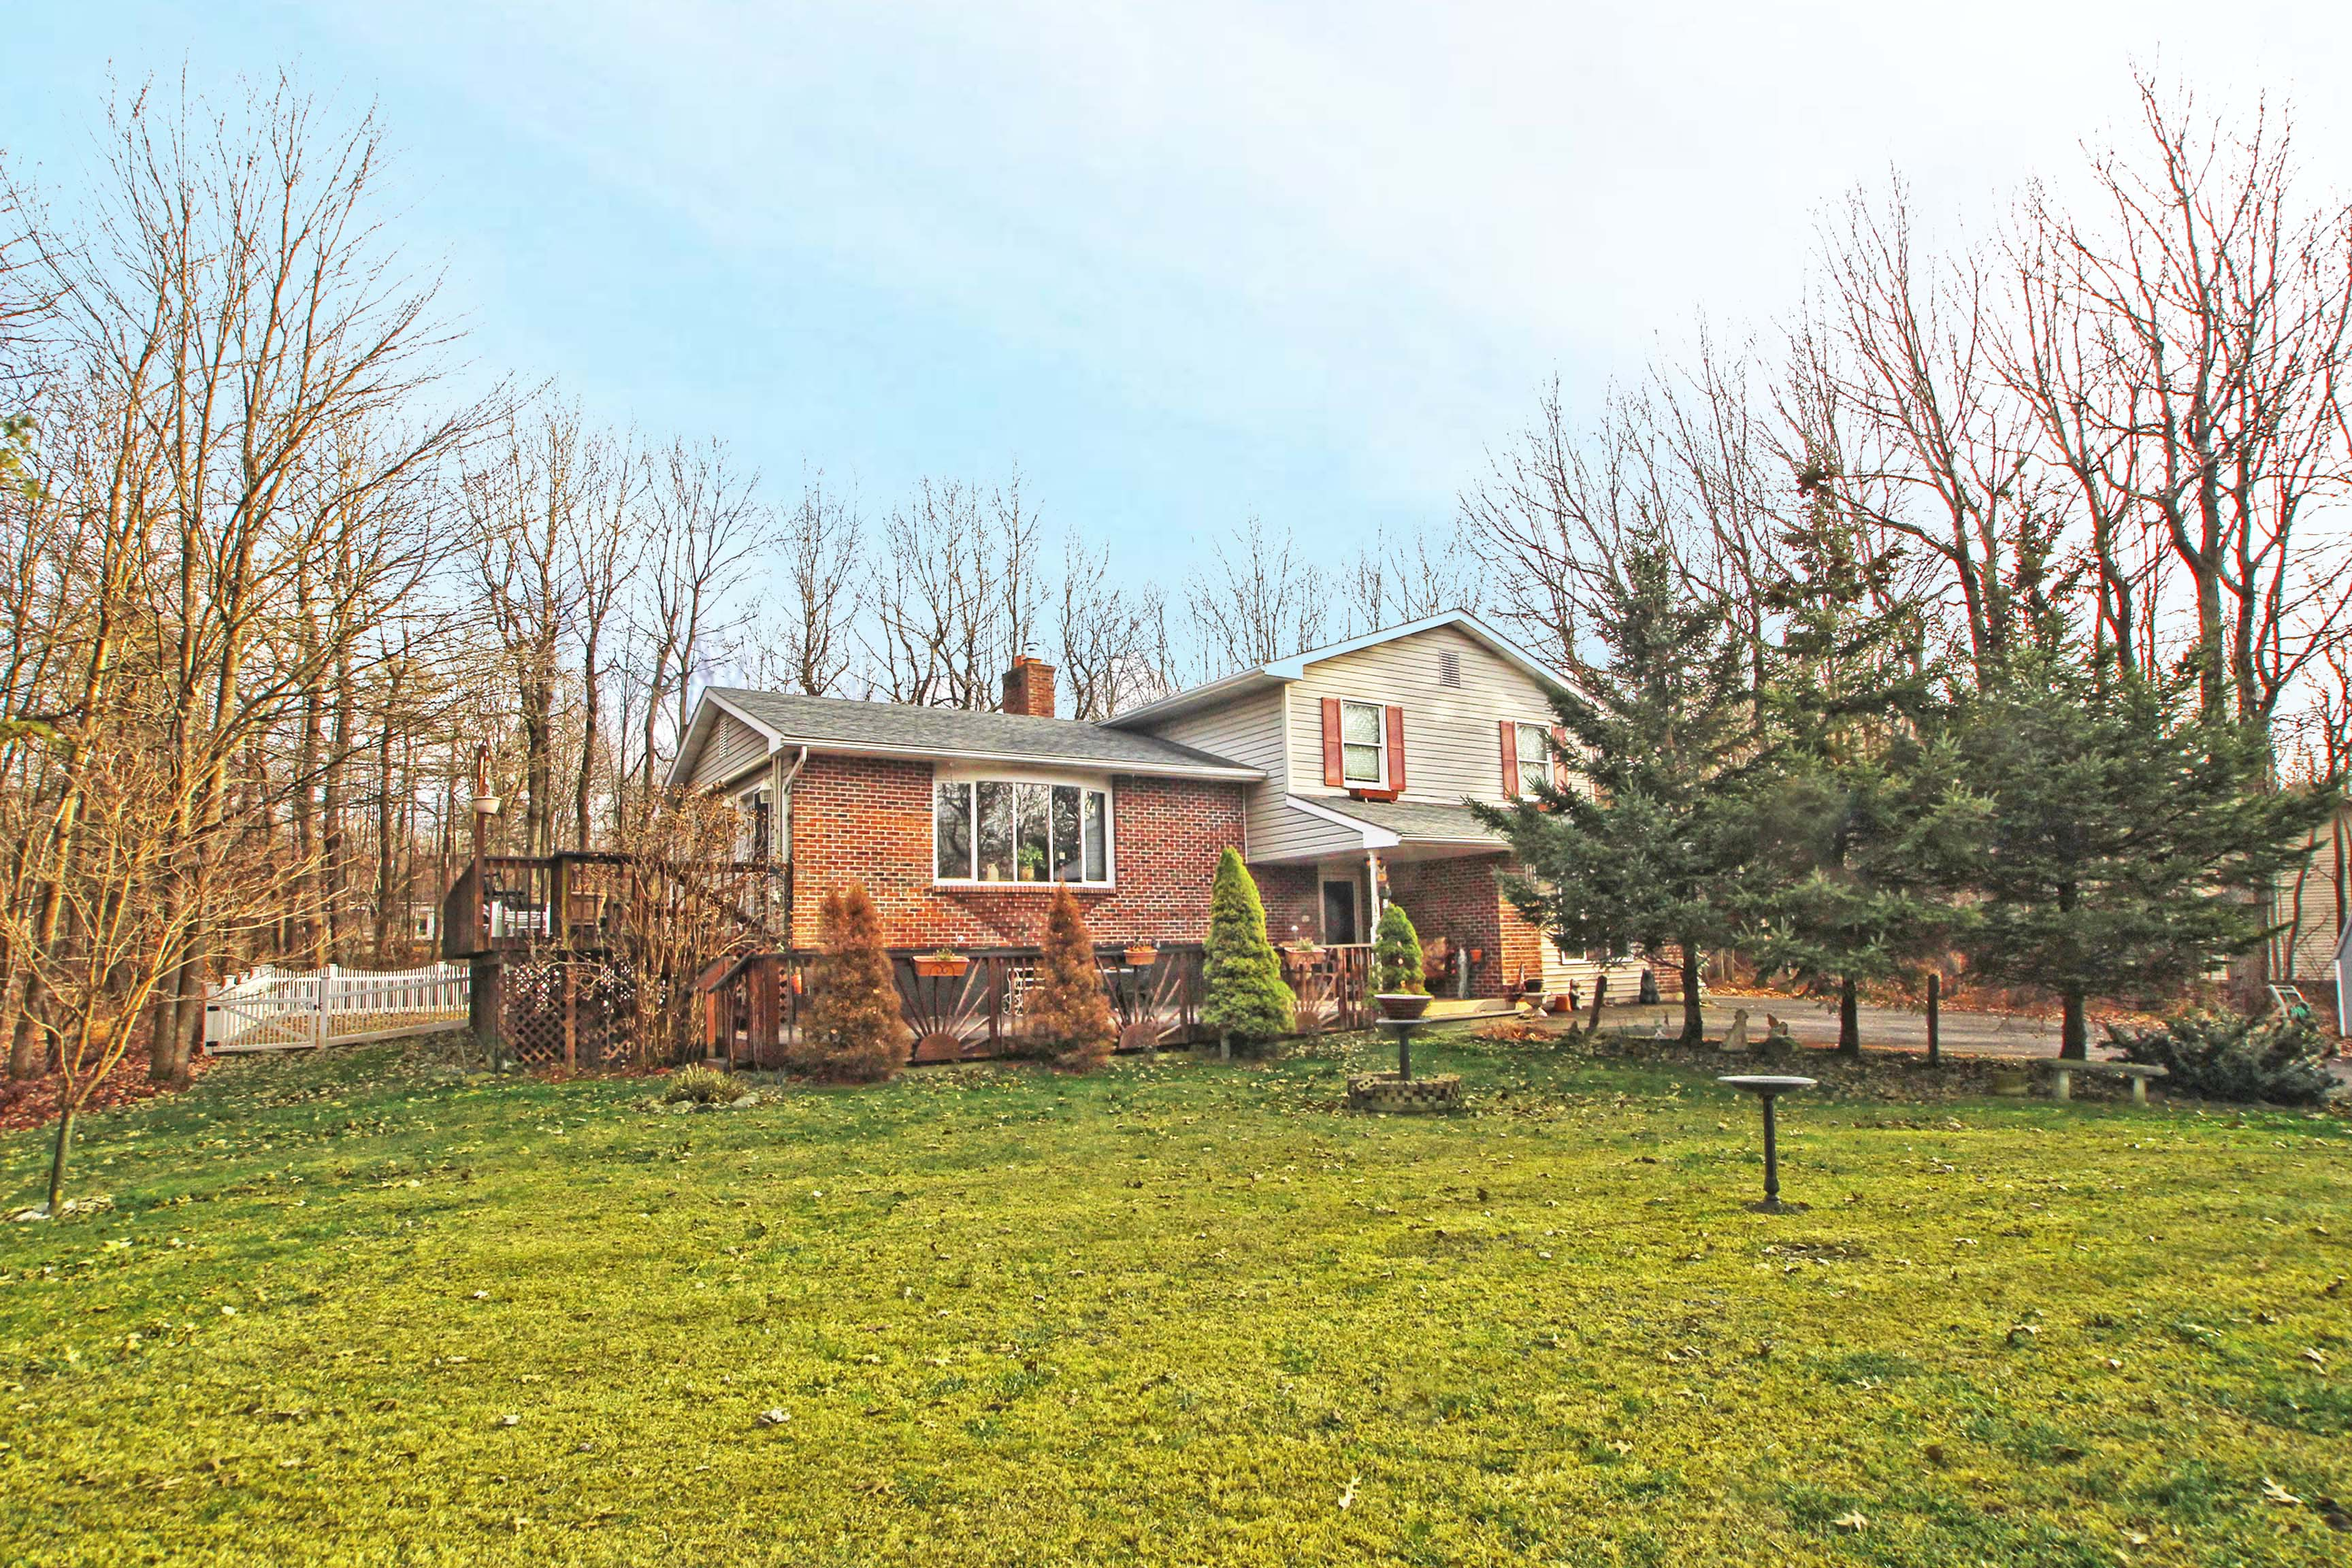 Jim Thorpe Home For Sale Just Listed in Penn Forest Streams!